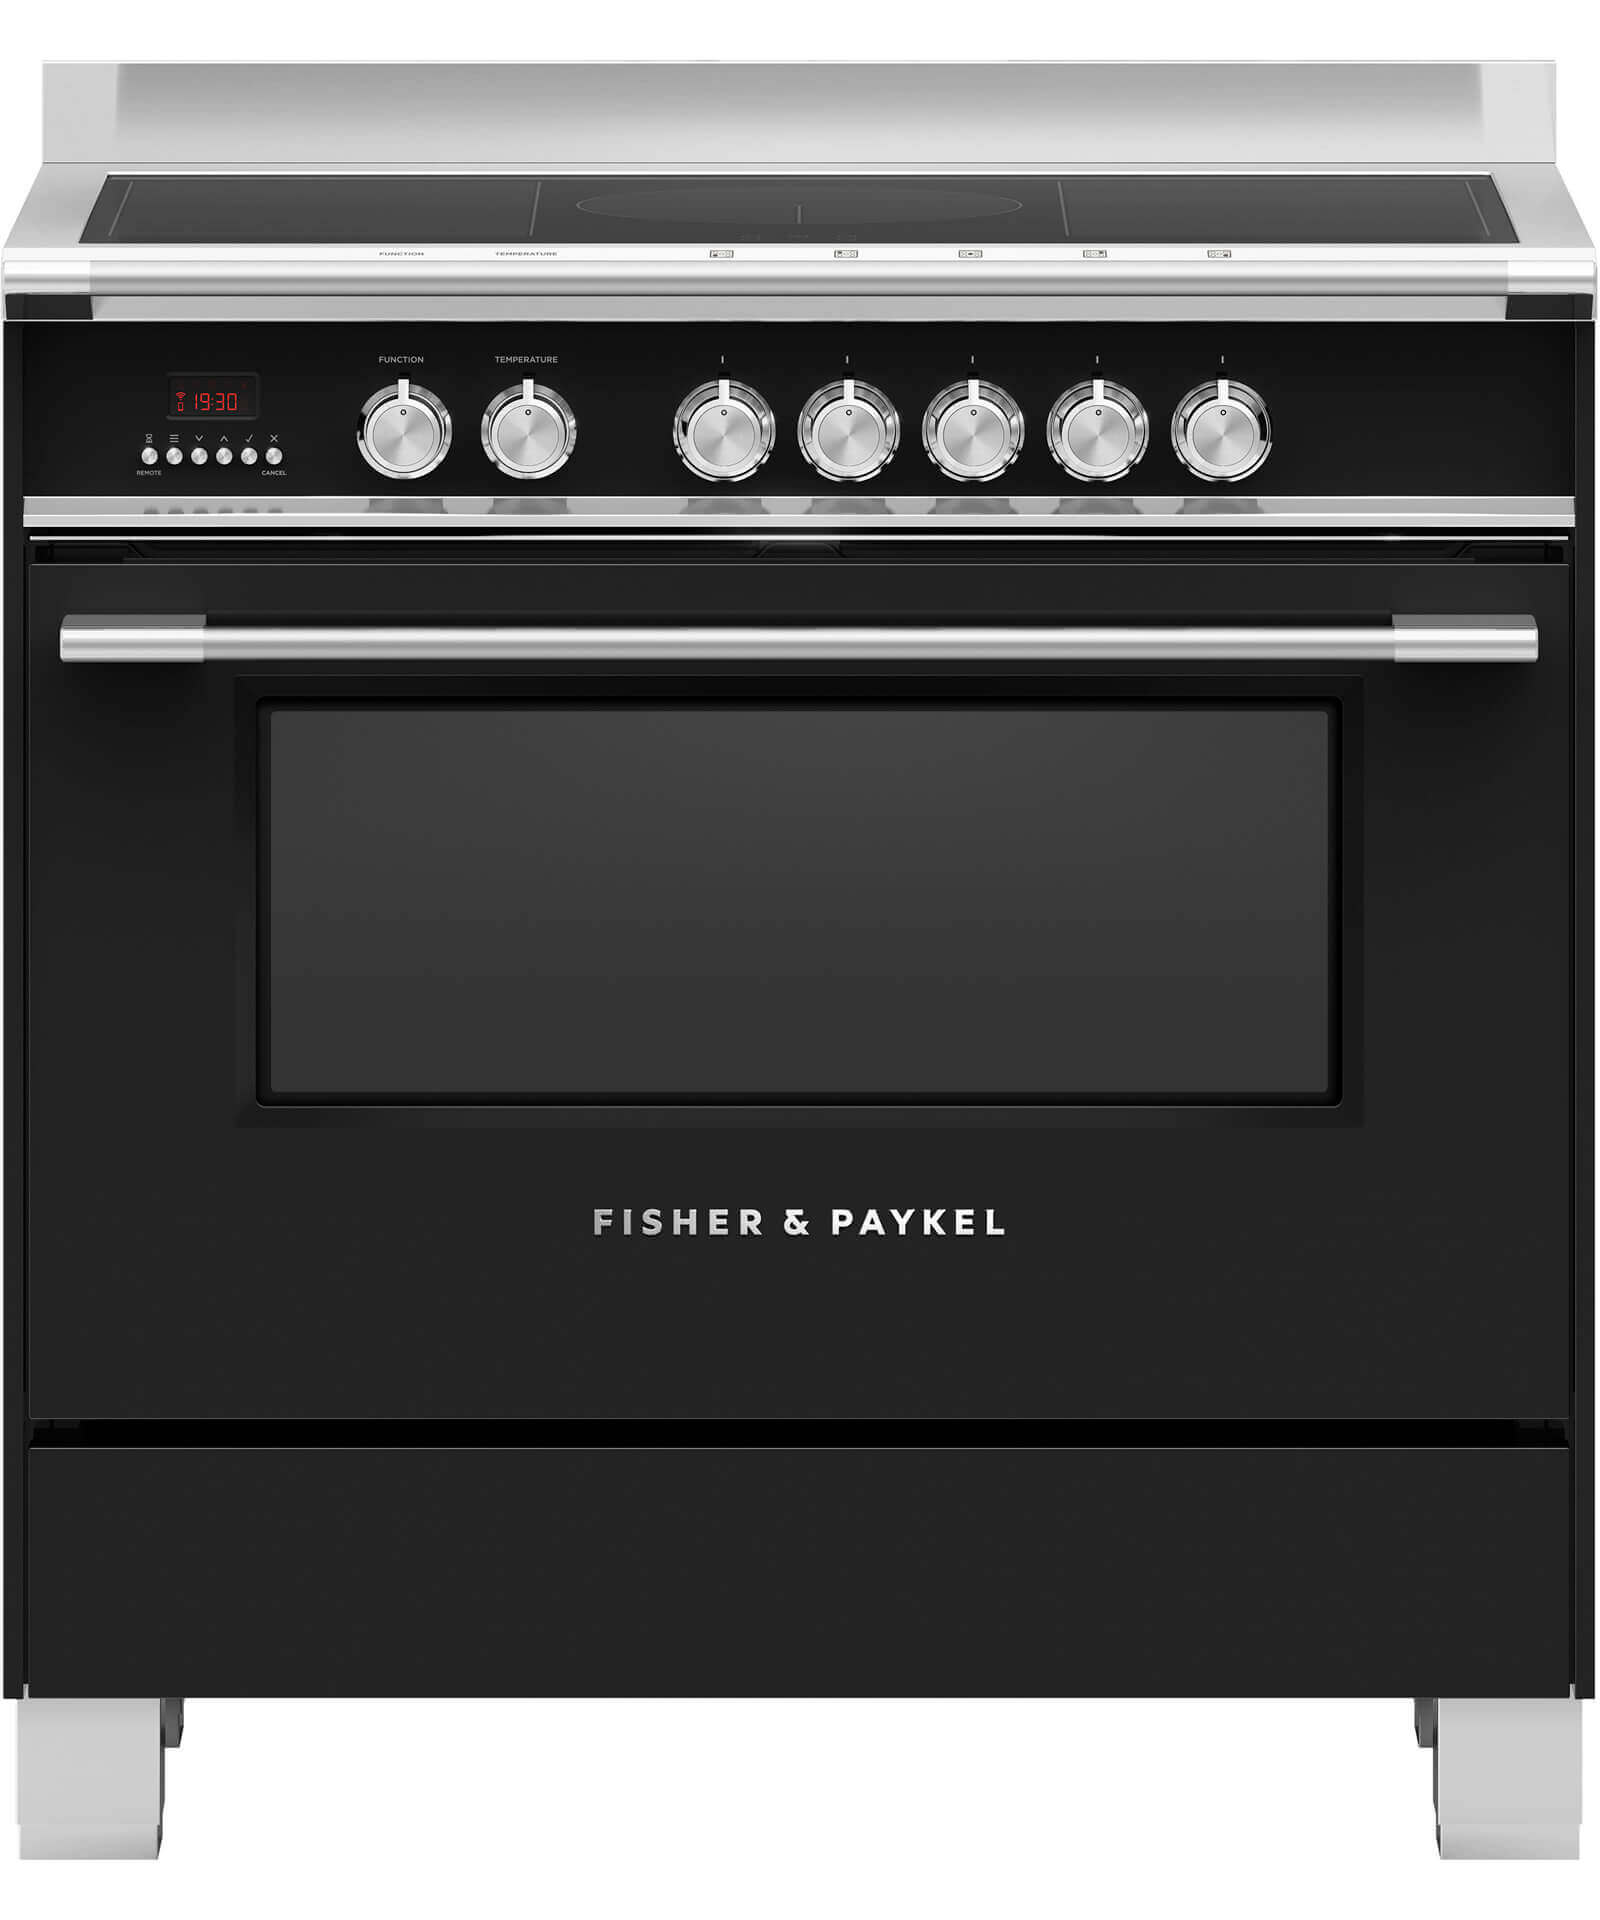 OR90SCI4B1 - 90cm Freestanding Induction Range Cooker - Series 4 - 81272